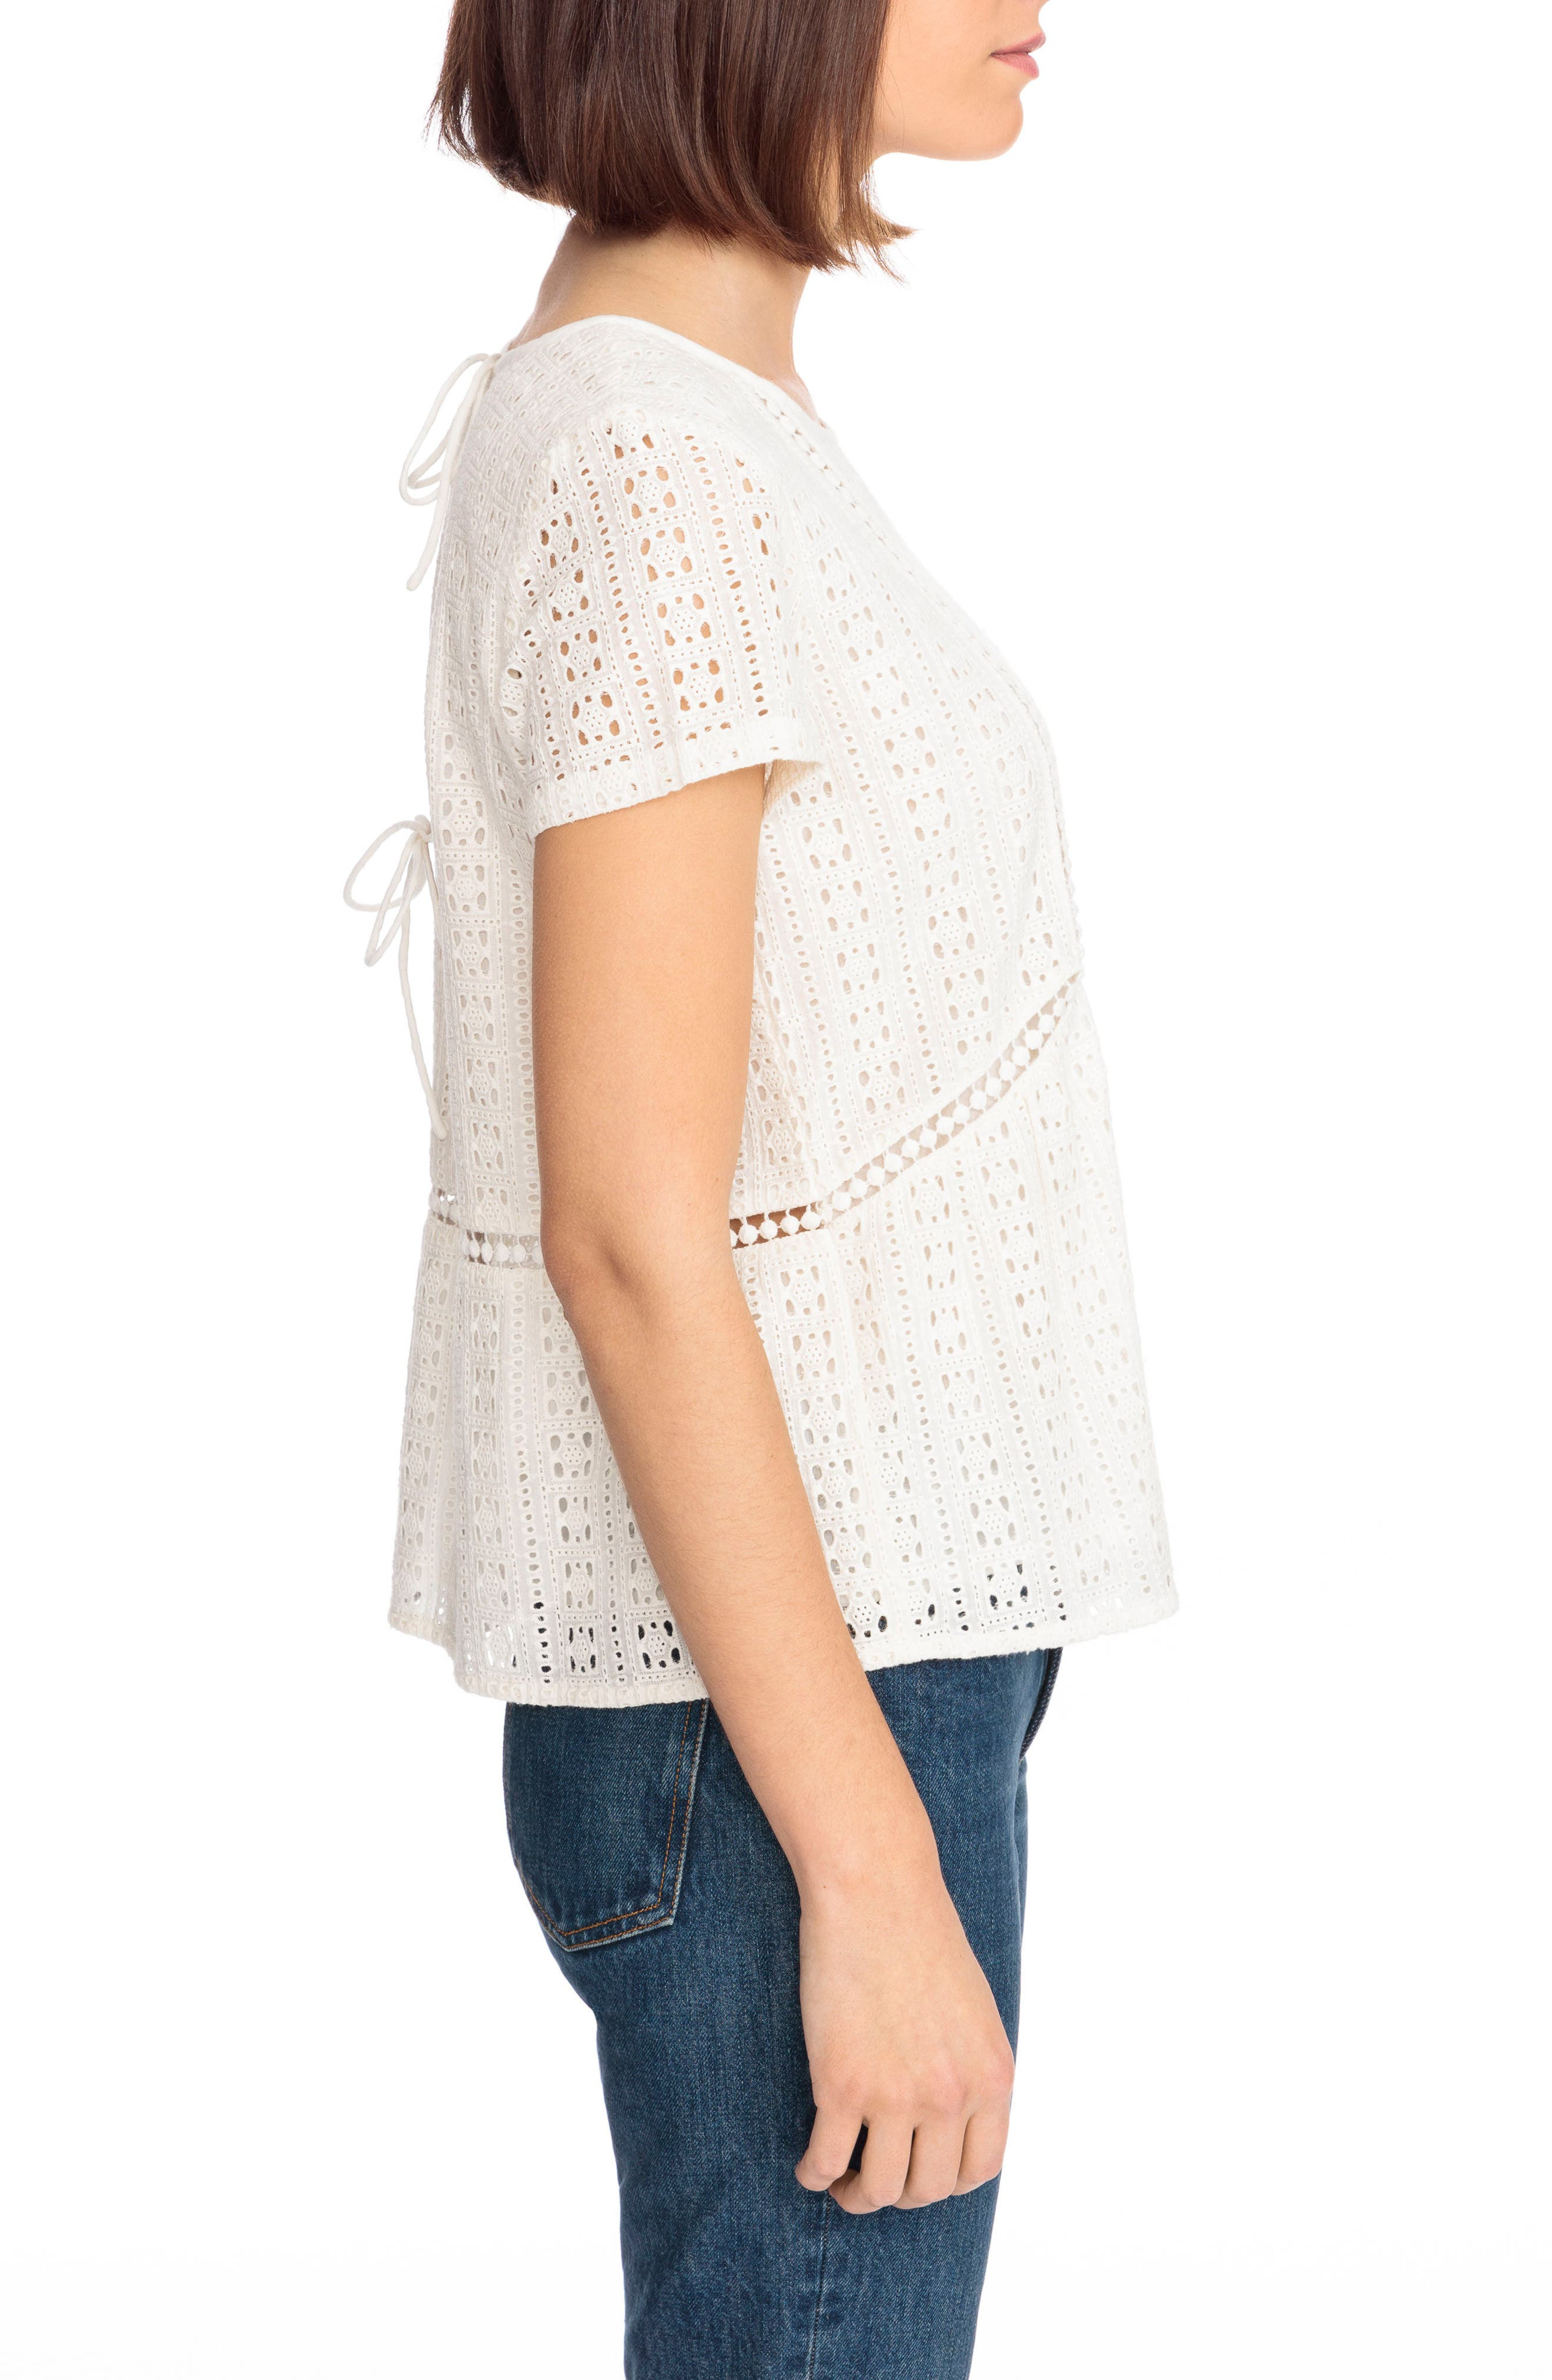 Clo Crochet Blouse,                             Alternate thumbnail 3, color,                             Off White